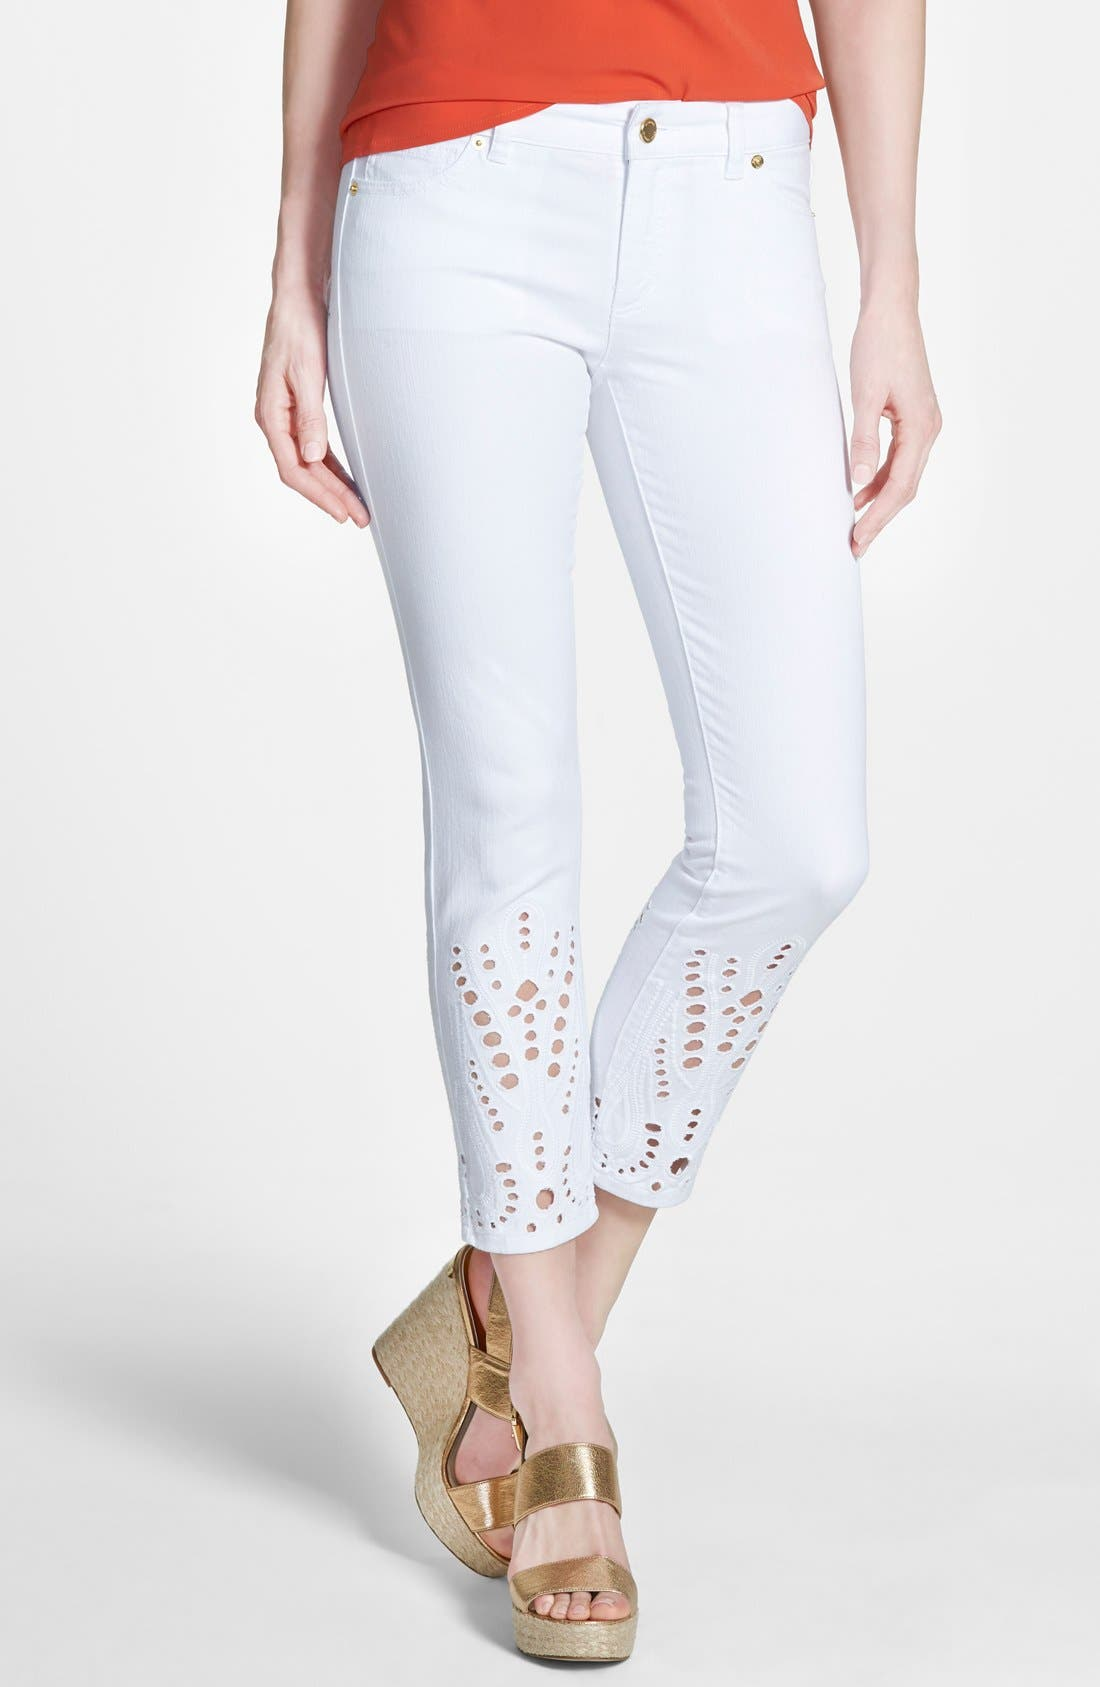 Alternate Image 1 Selected - MICHAEL Michael Kors Eyelet Embroidered Stretch Crop Skinny Jeans (White)